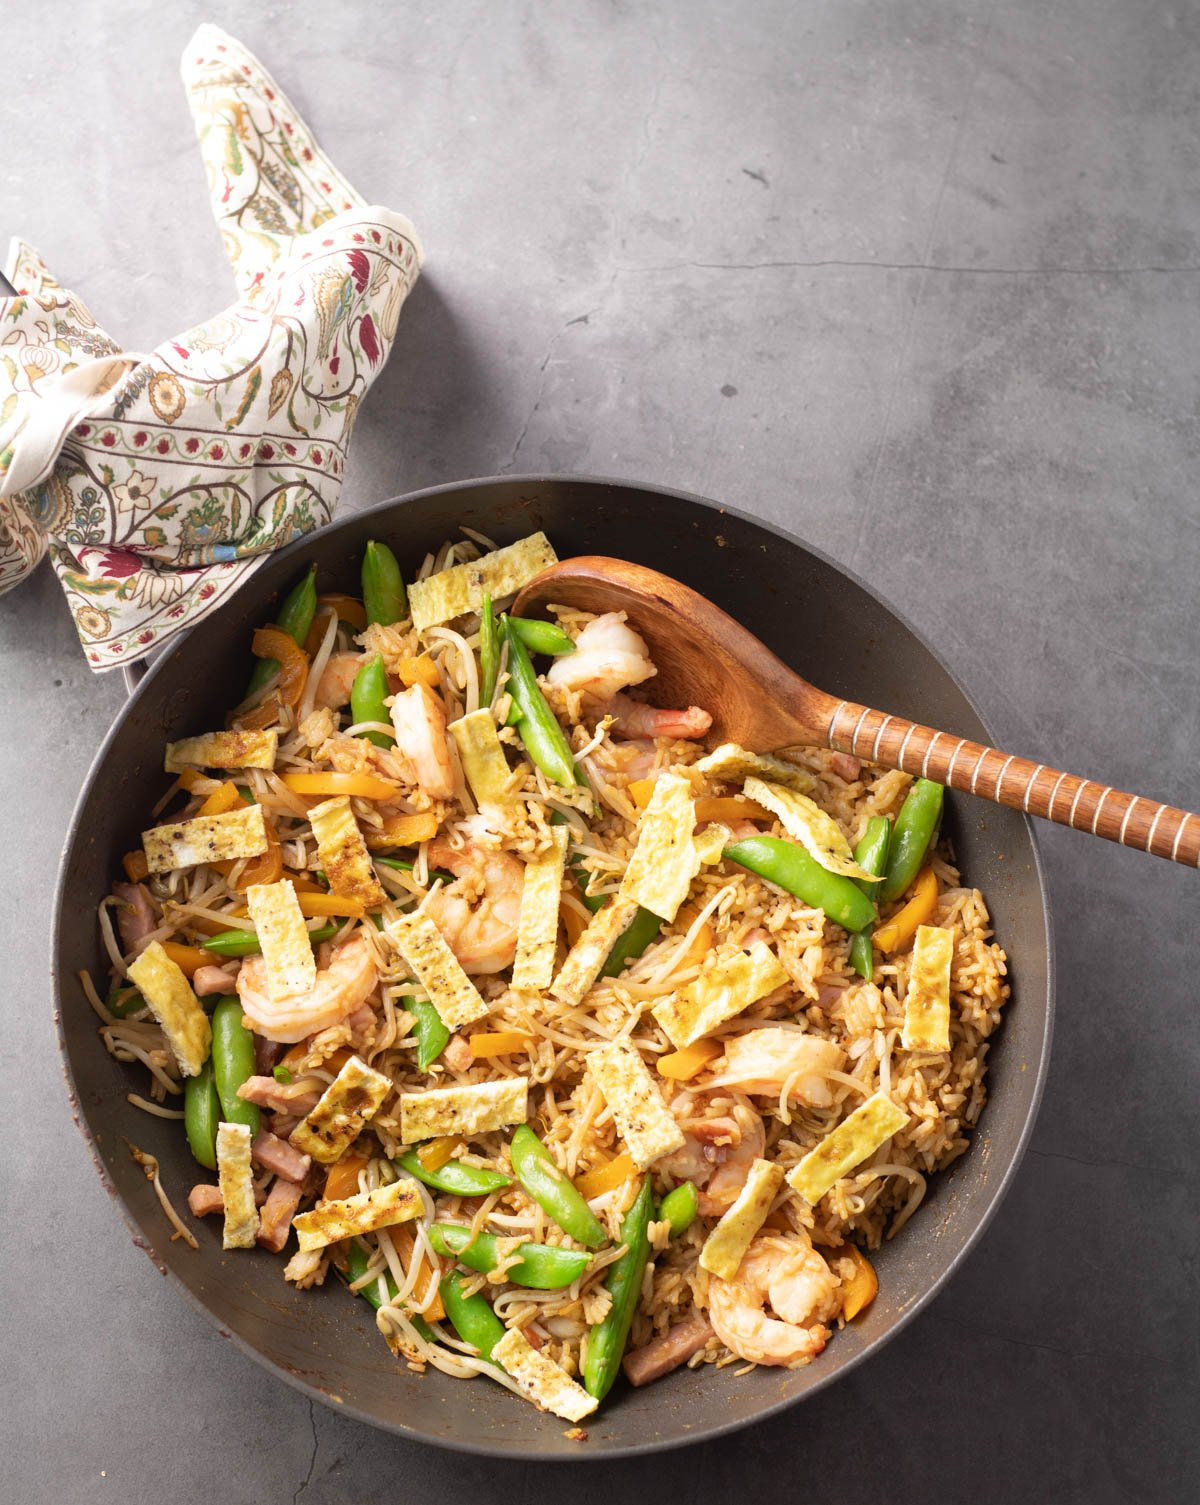 A wok with the completed fried rice, a wooden spoon, and a print napkin.